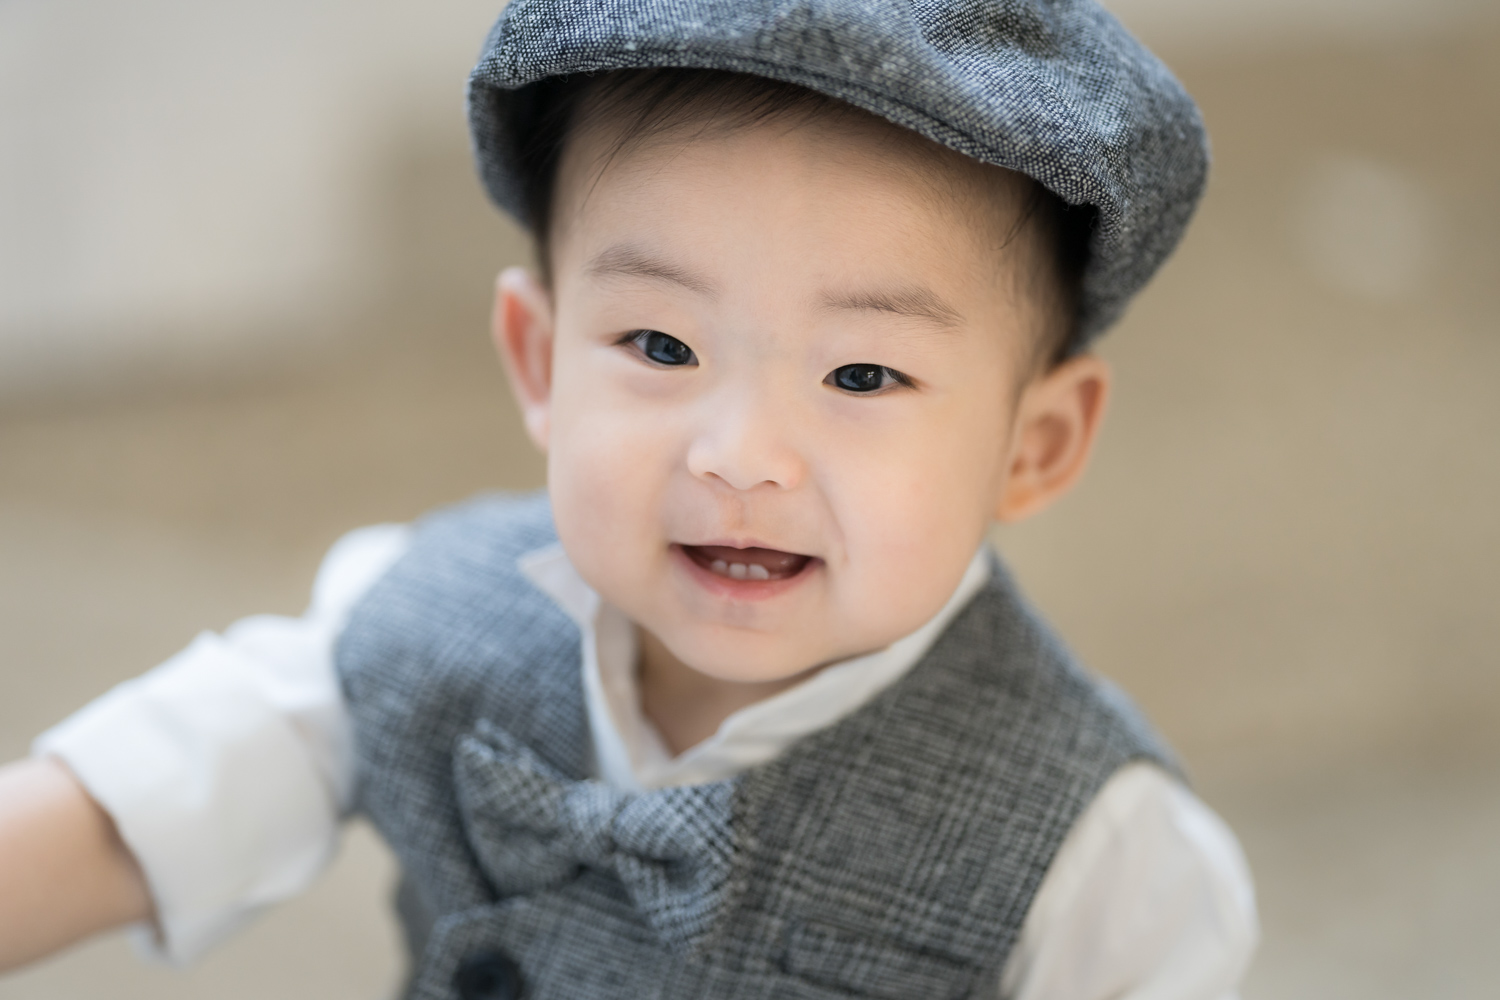 Baby in bow tie and cap smiles during Chicago baby photoshoot.